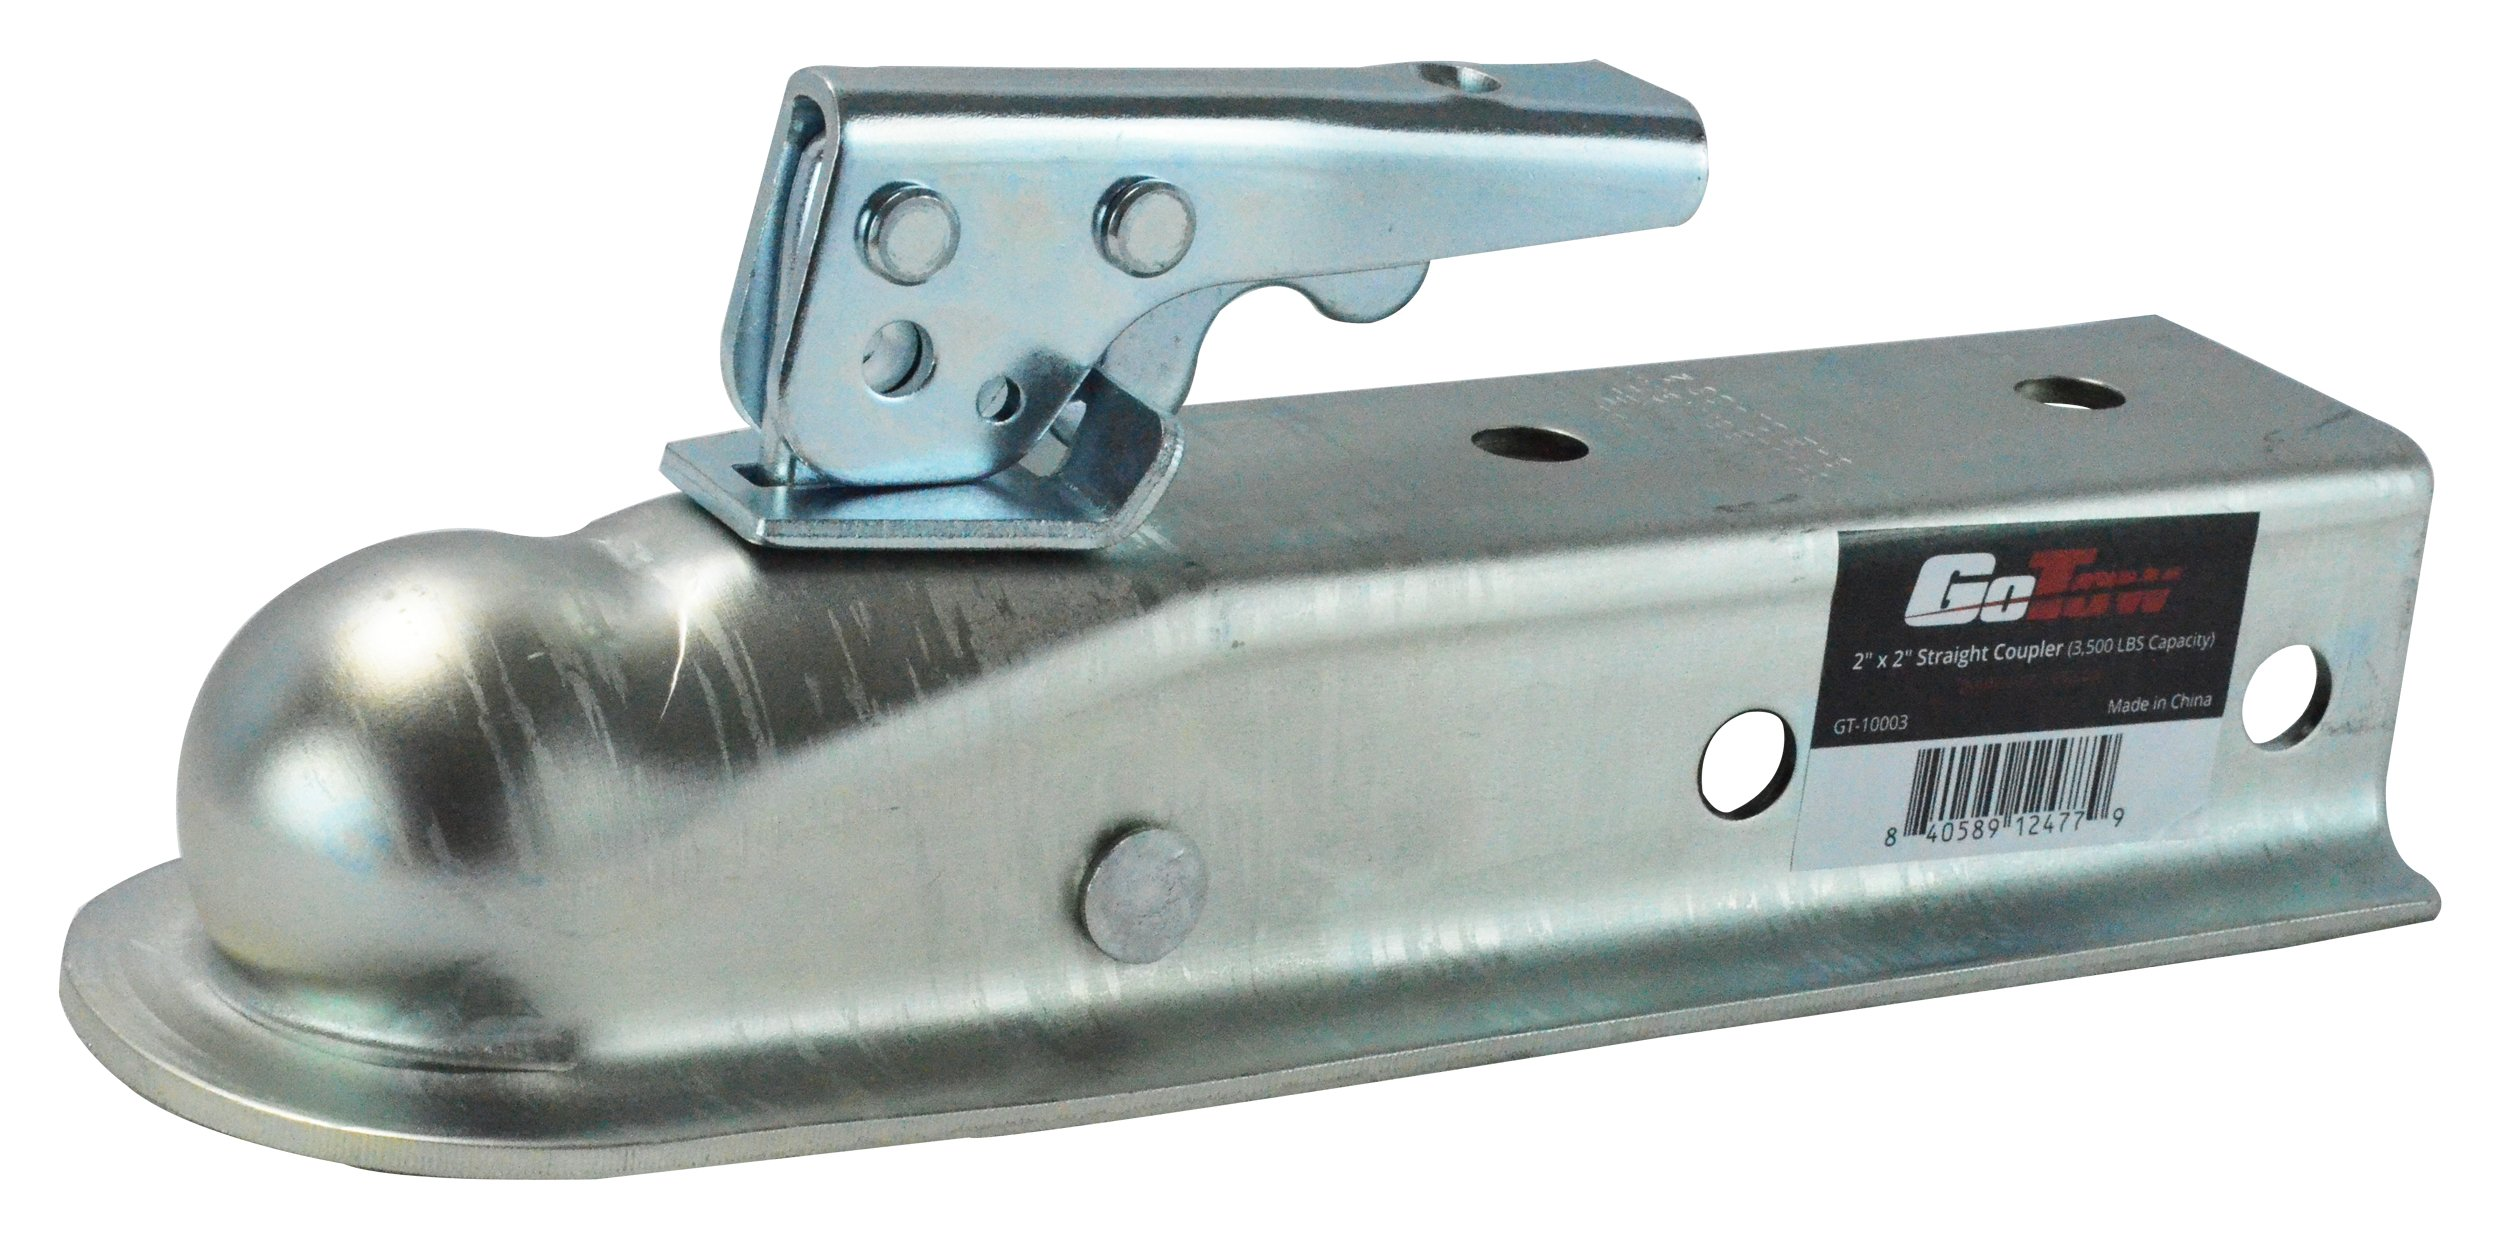 GoTow GT-10003 Silver 2'' Hitch Ball 2'' Channel Straight Coupler, Class 2-for Towing RV, Boat, Camper w/GTW of 3500lbs by GoTow